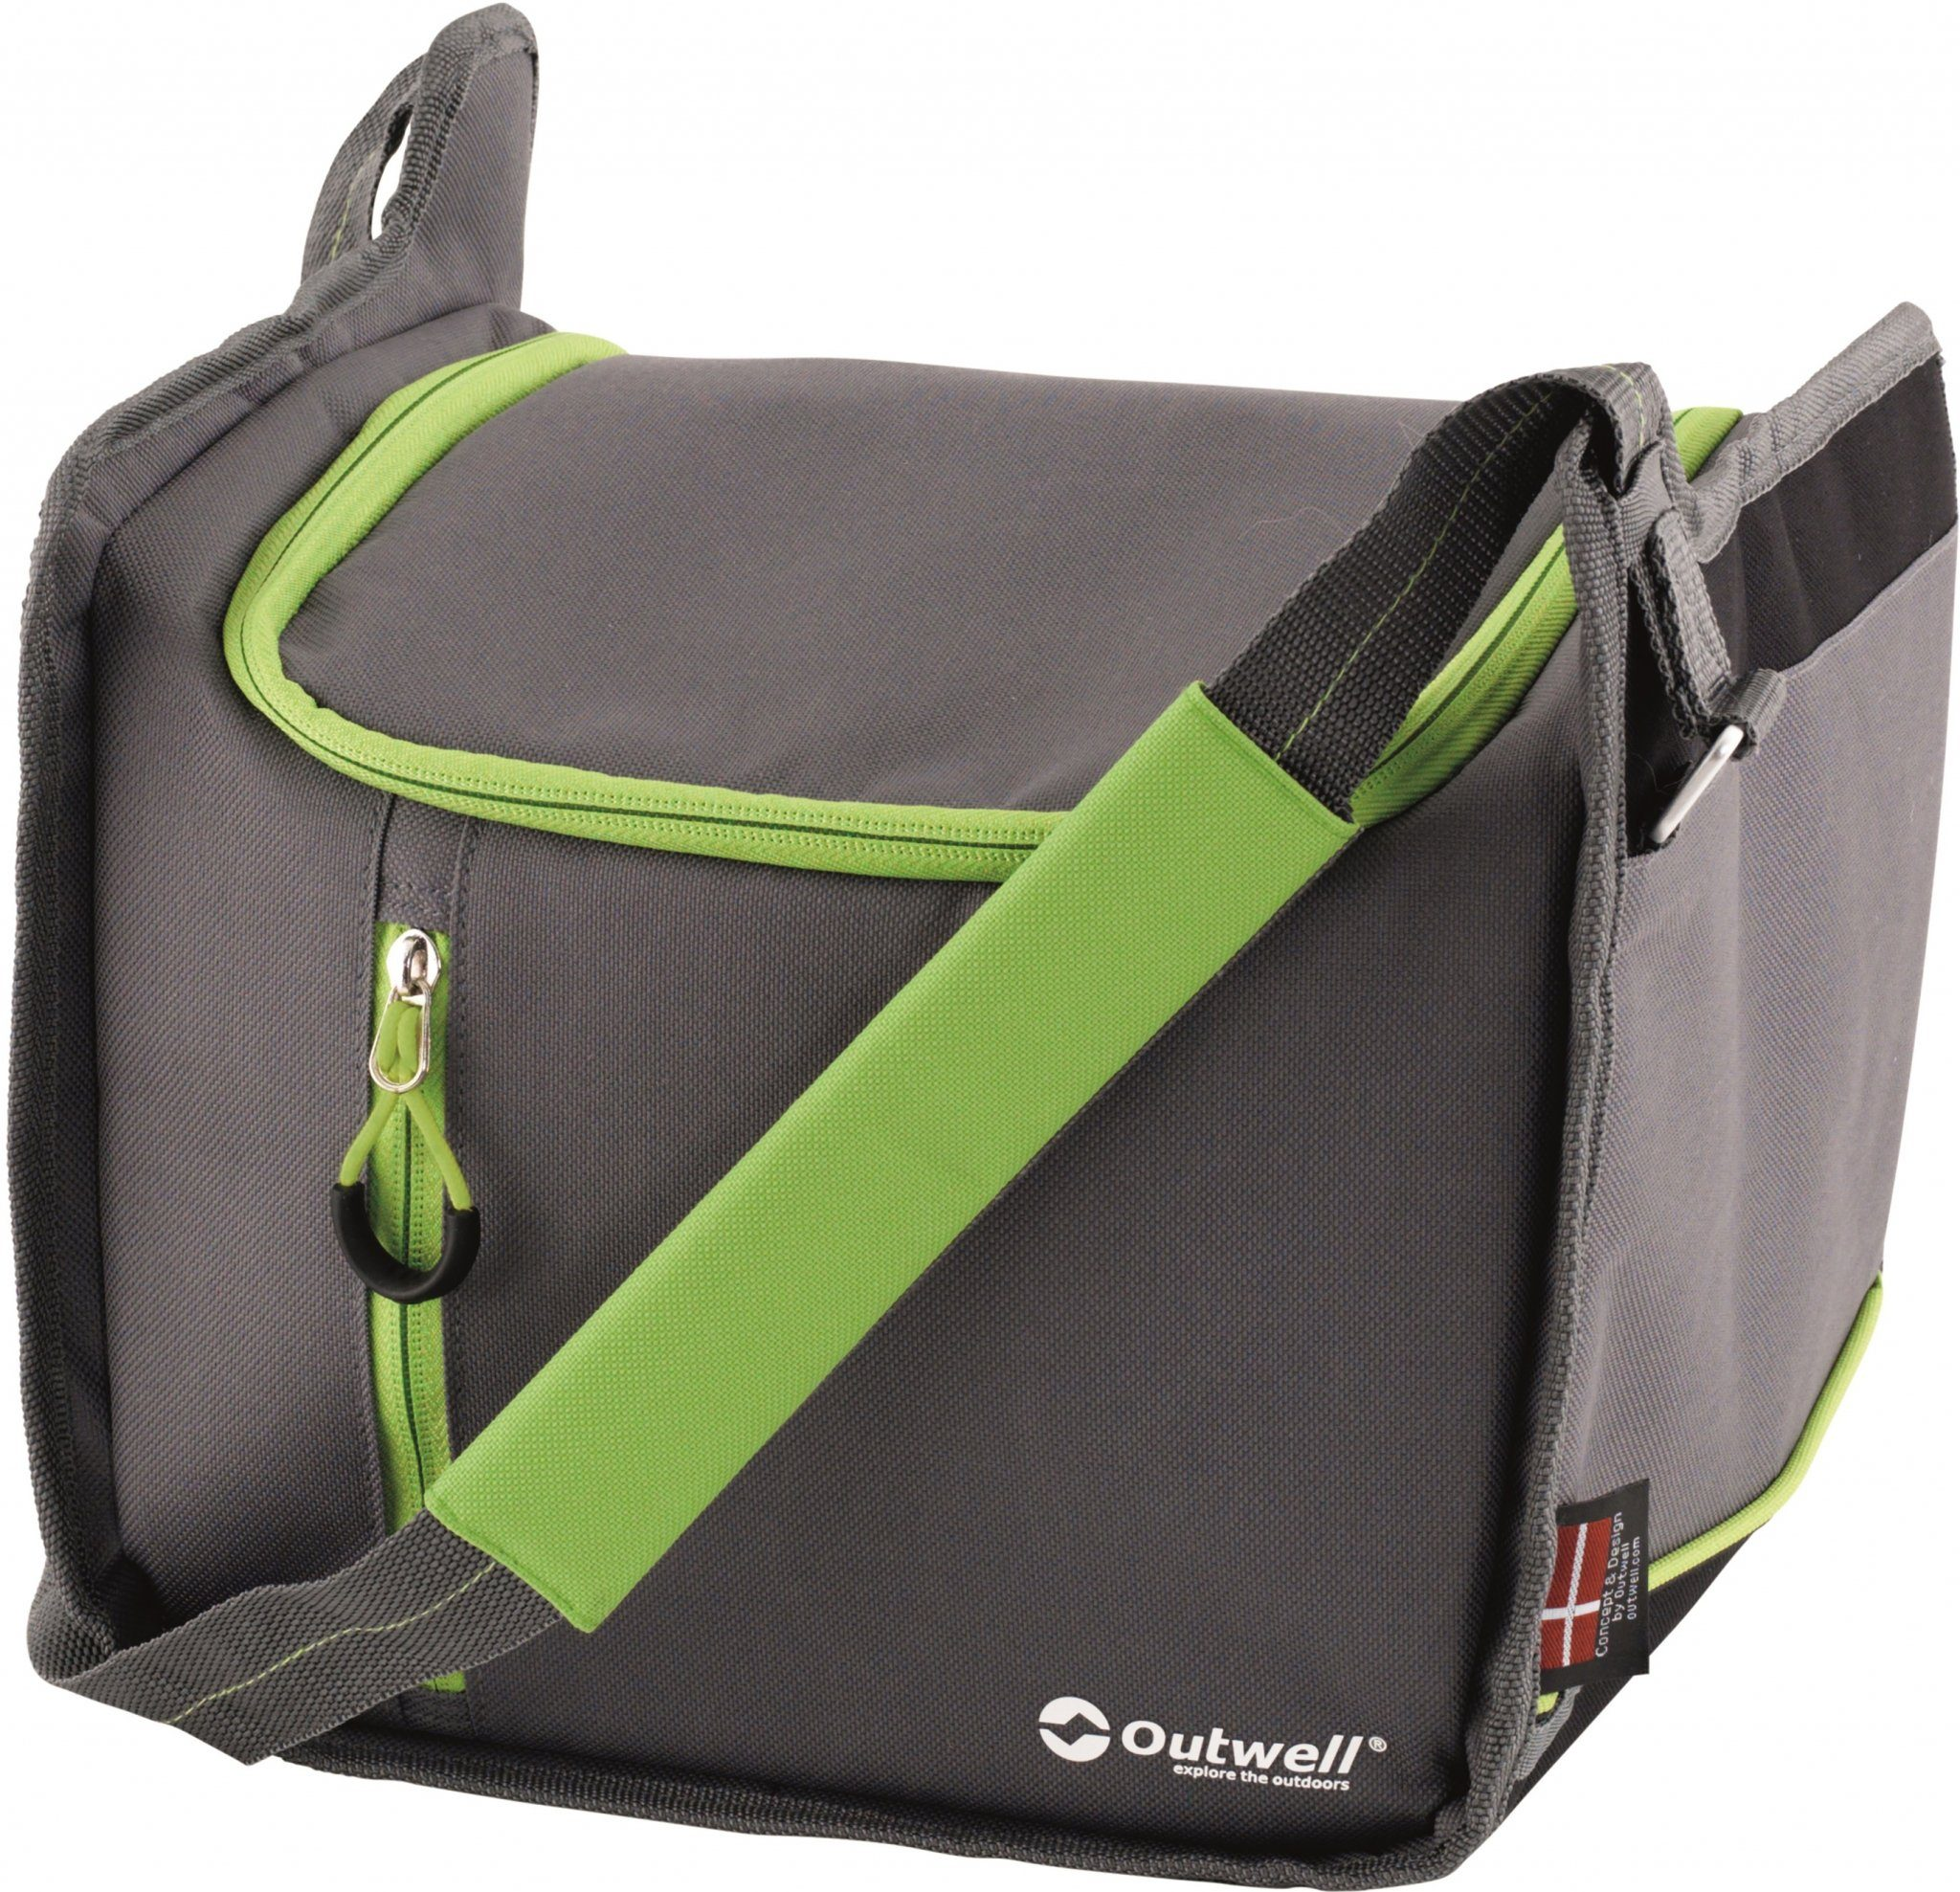 Outwell Campingkühlbox & -Tasche »Cormorant S Cool Bag«